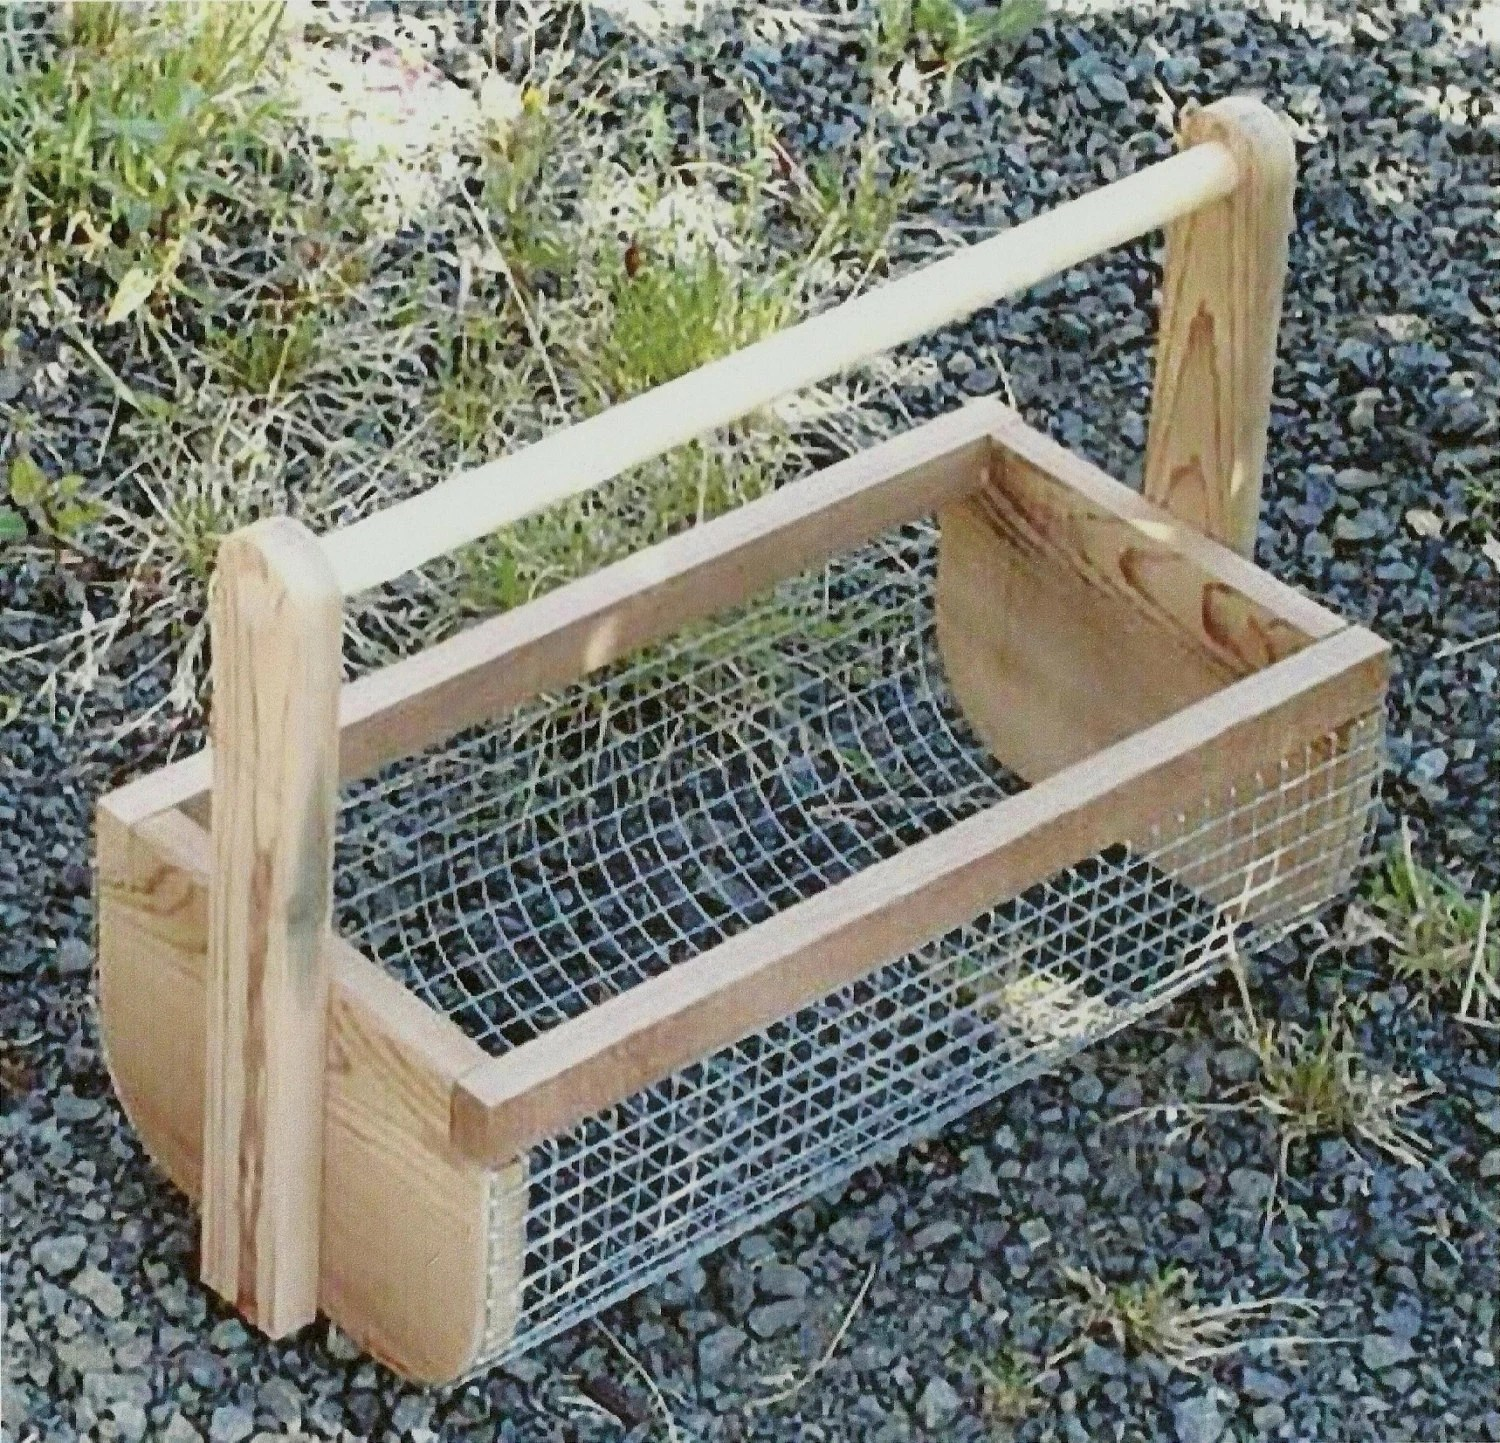 Harvest Garden Vegetables and Spray Clean in Wire Mesh Tote - Vegetables, fruit and flowers - UpcycledWood